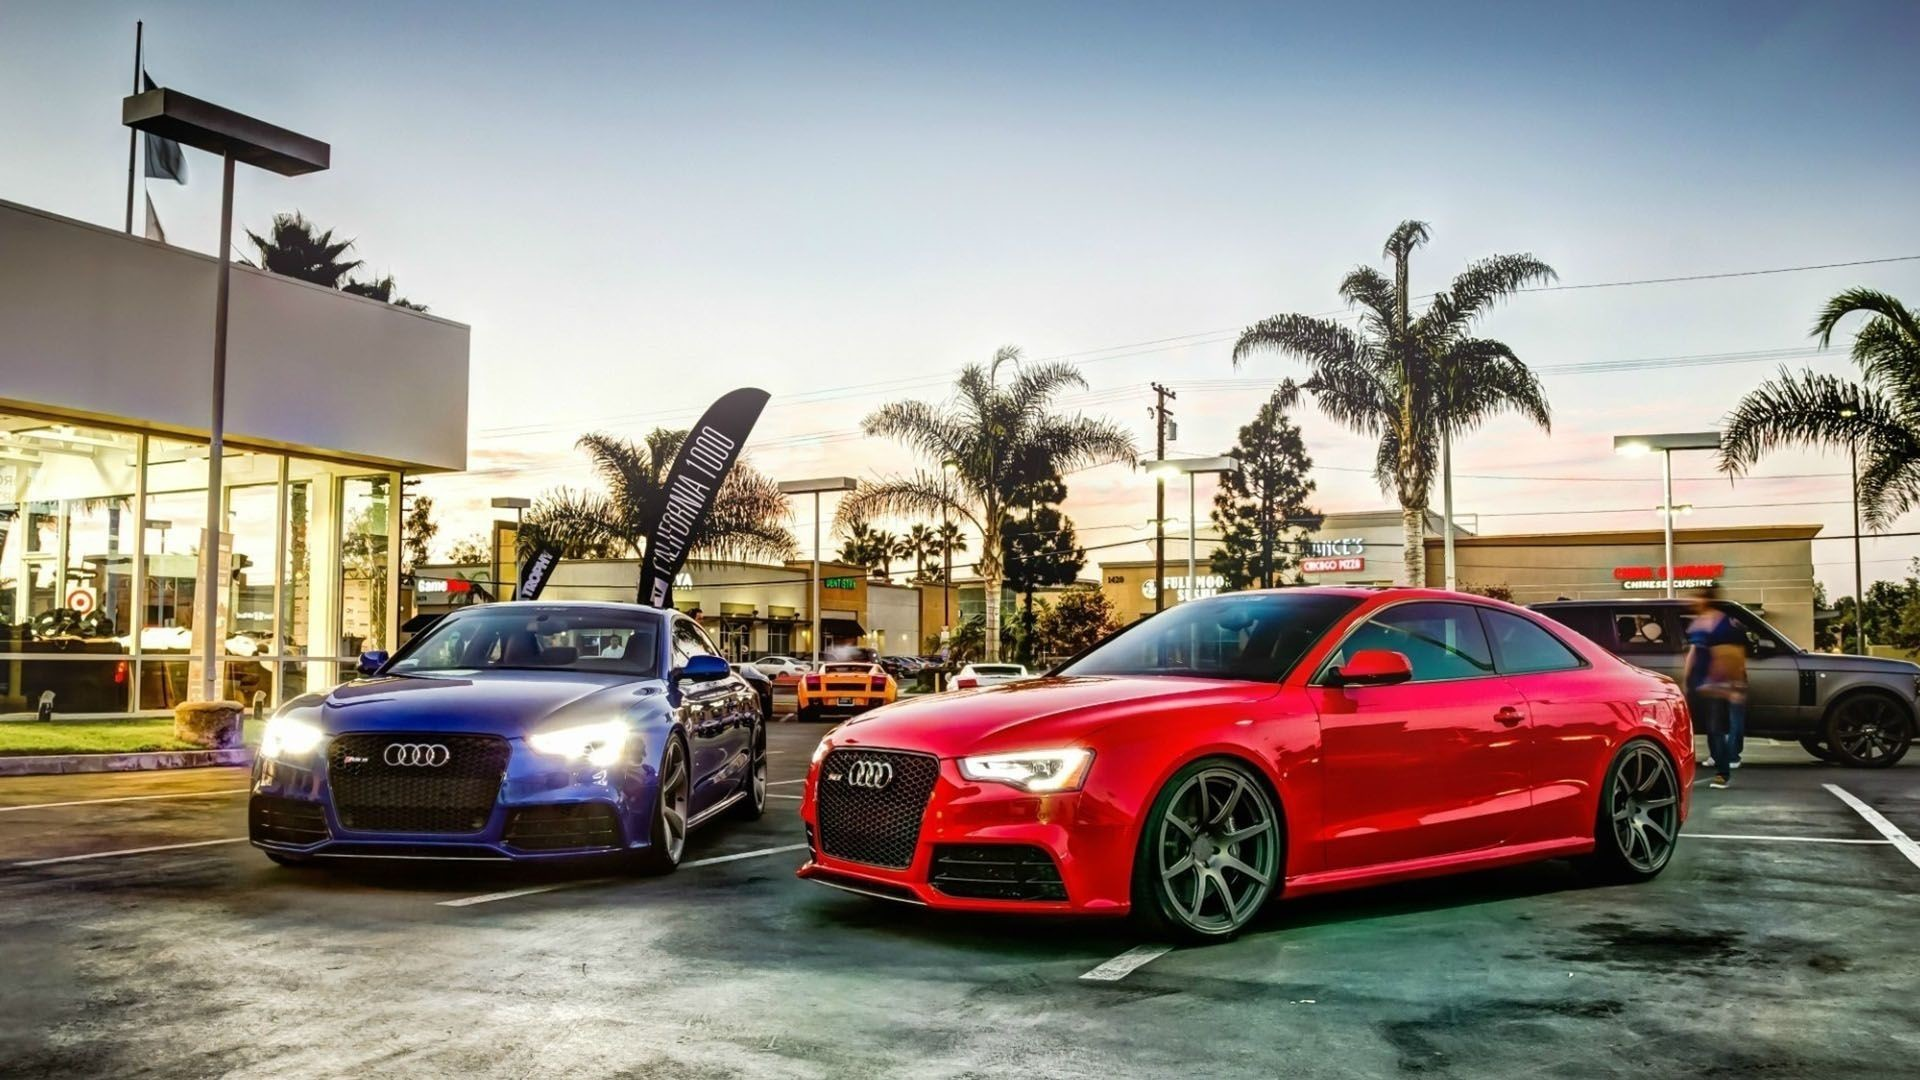 Res: 1920x1080,  Audi S5 Wallpapers : Get Free top quality Audi S5 Wallpapers for  your desktop PC